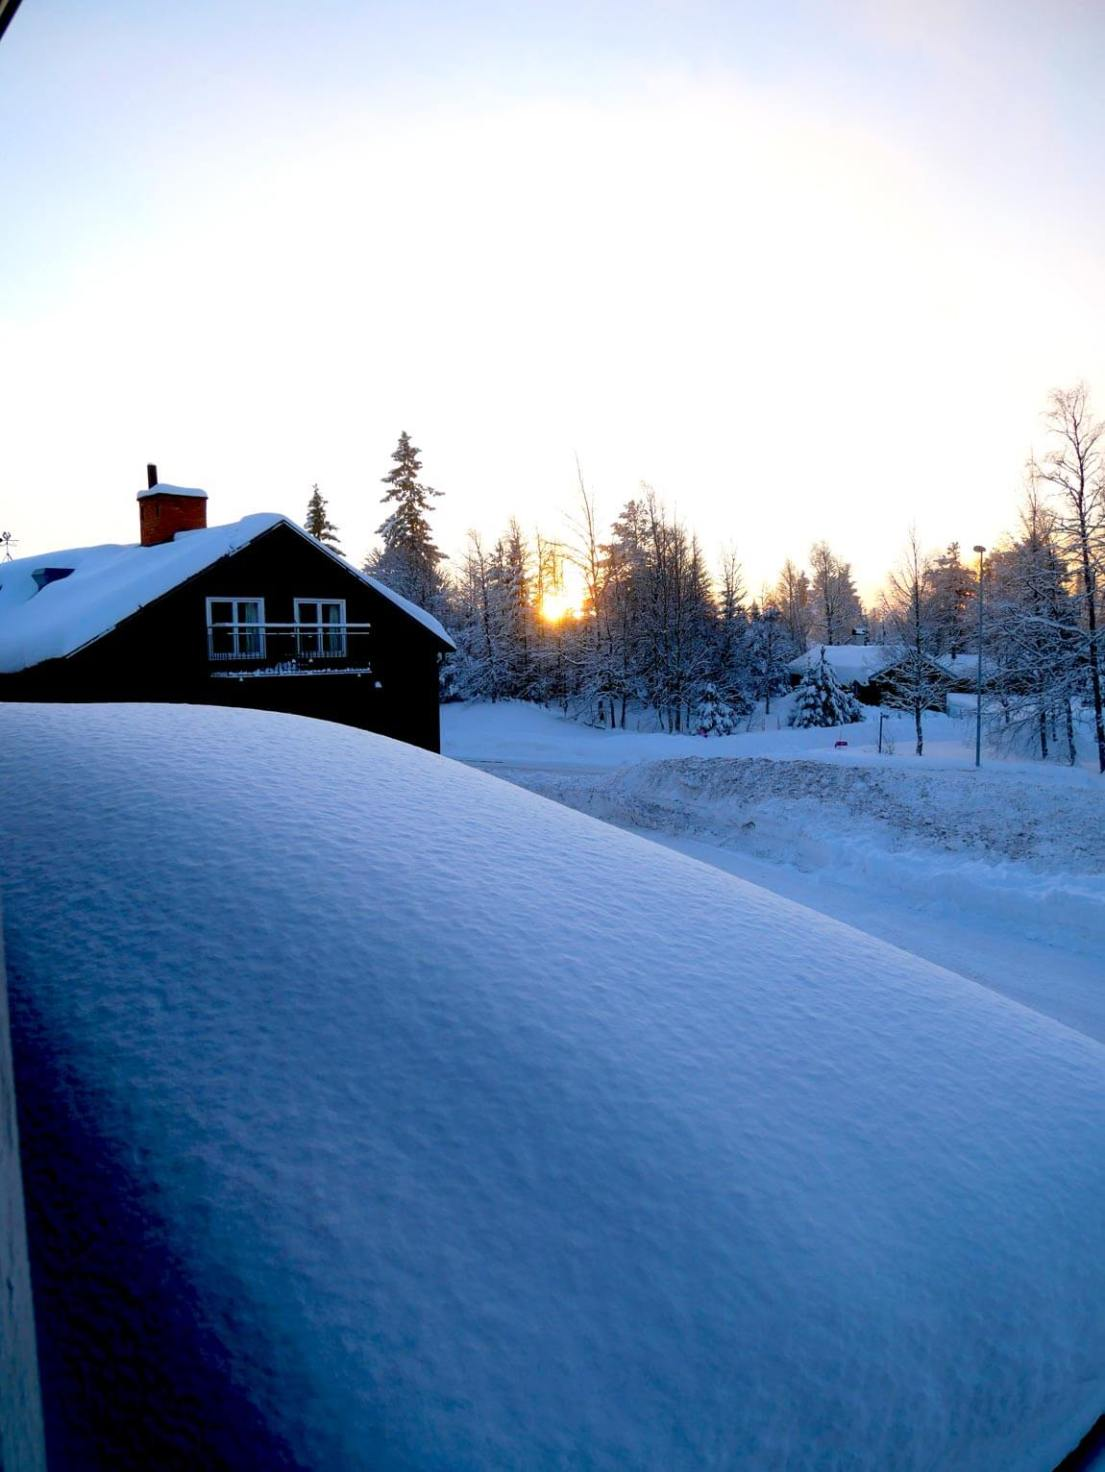 Pillowy snow in morning light, Sweden. Photo by Anna Sjostrom Walton, Chalk & Moss.